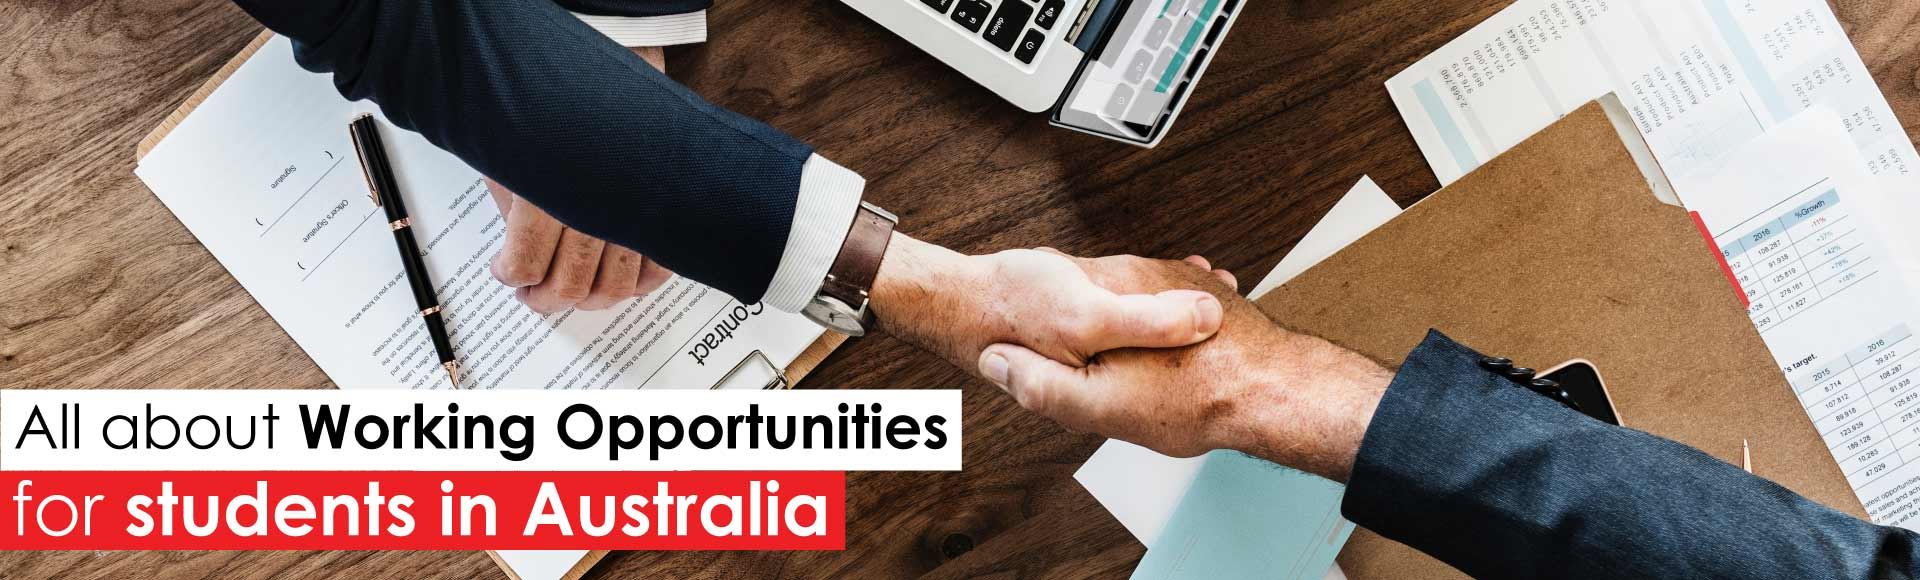 All about working opportunities for students in Australia